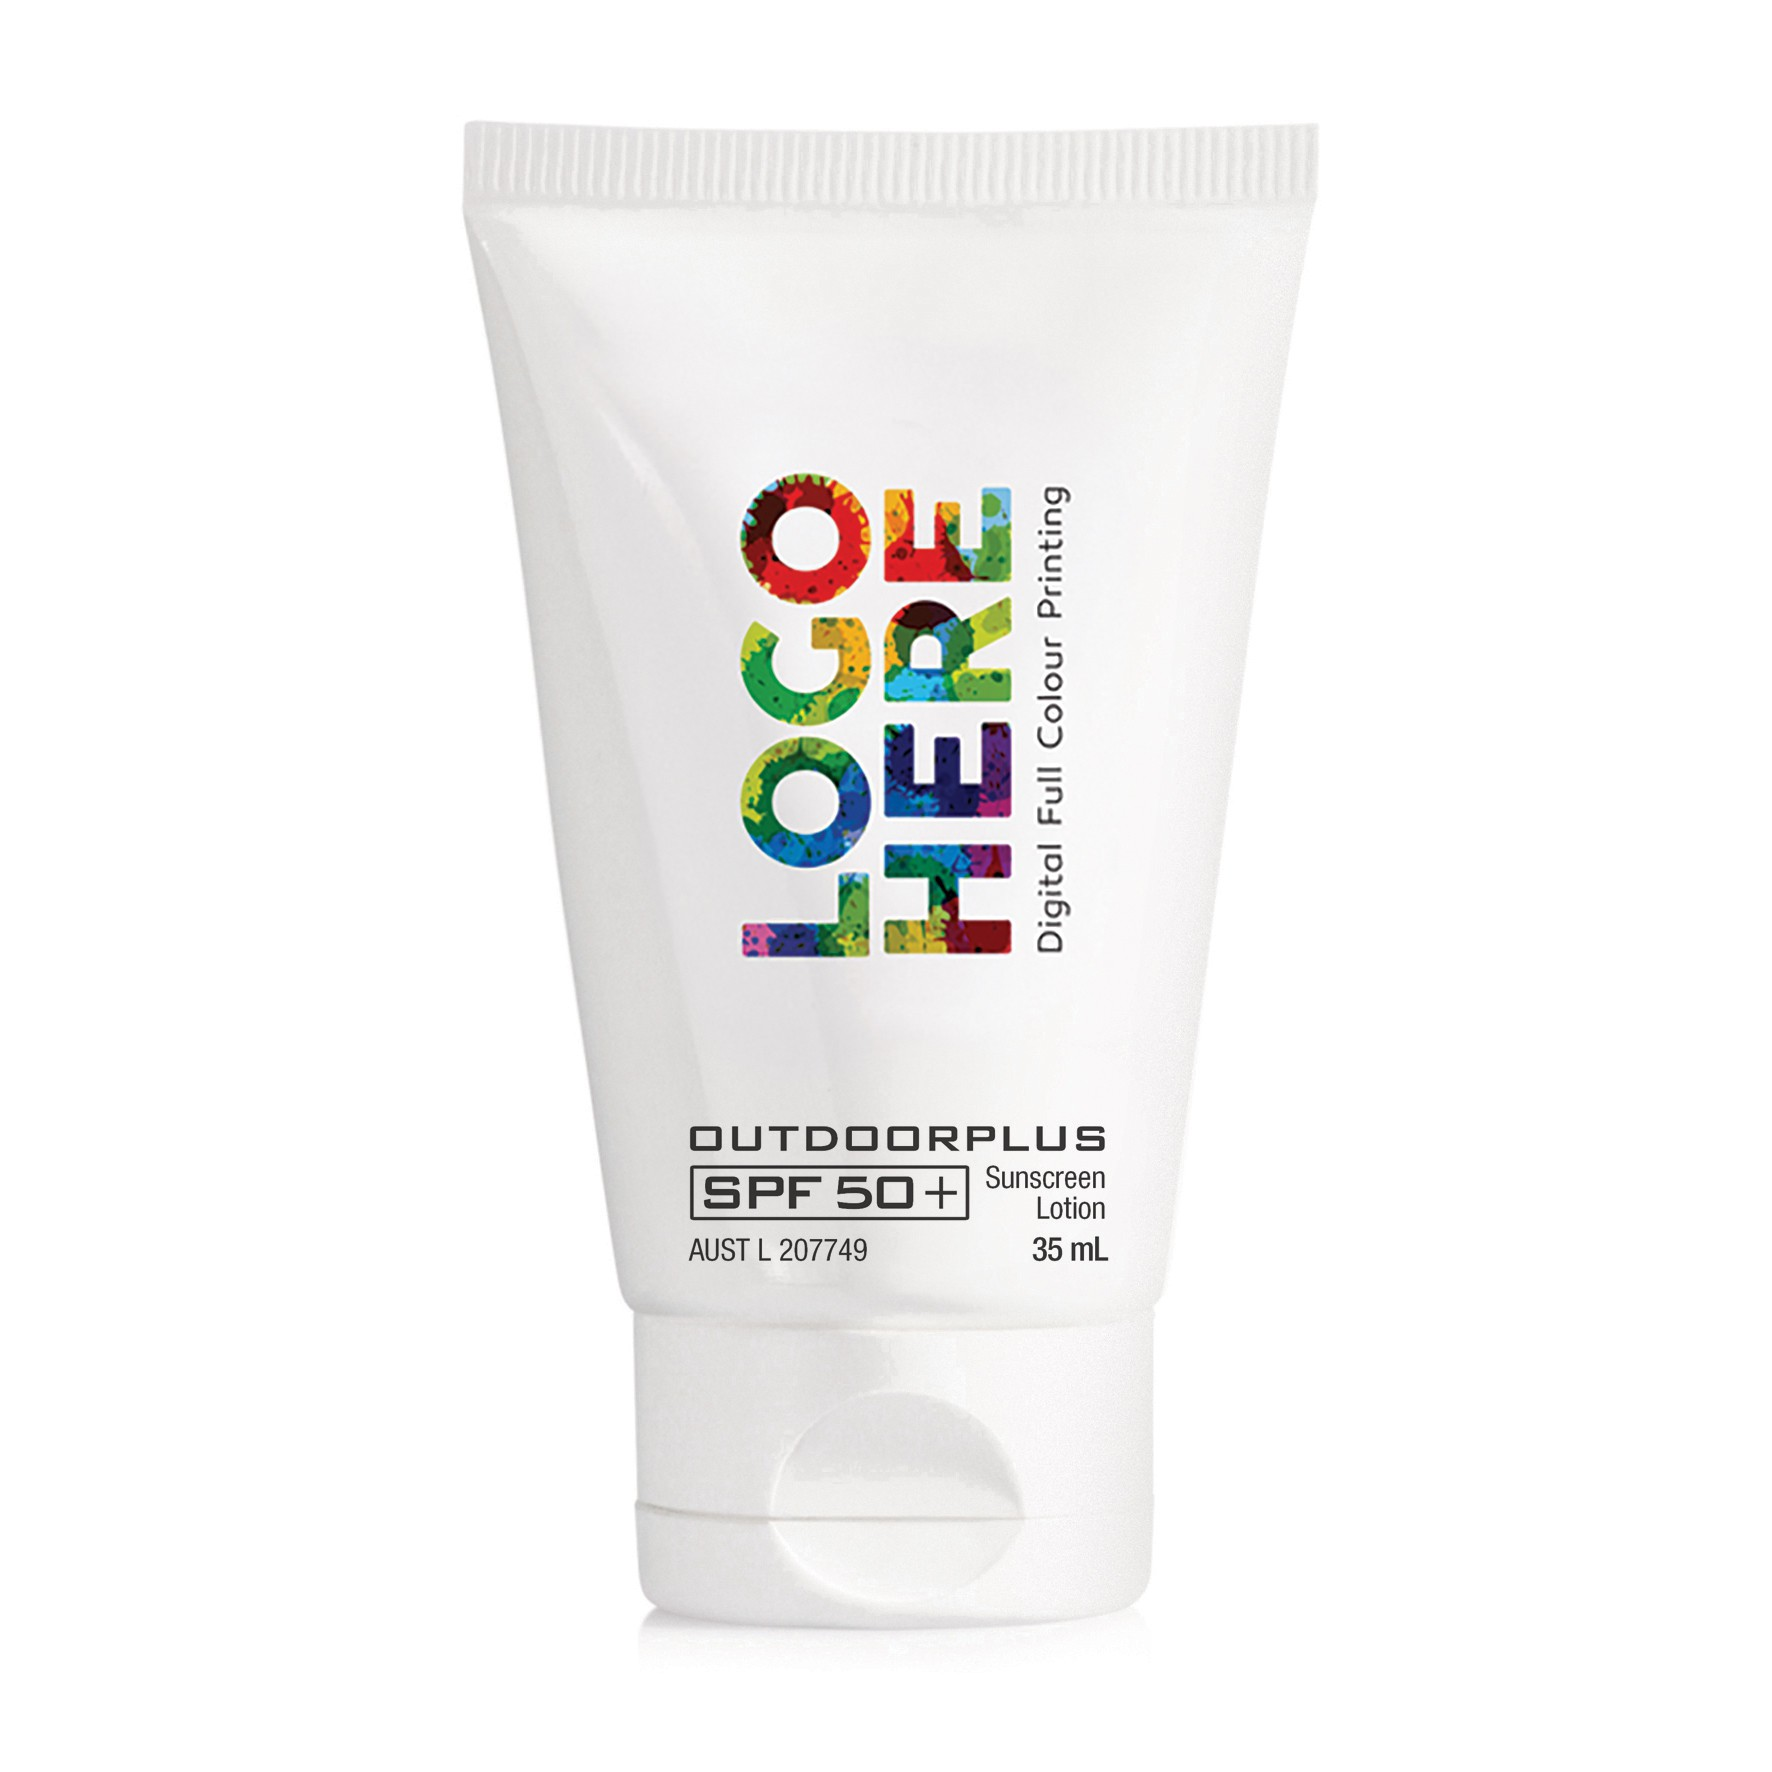 Australian Made Sunscreen SPF 50+ 35ml